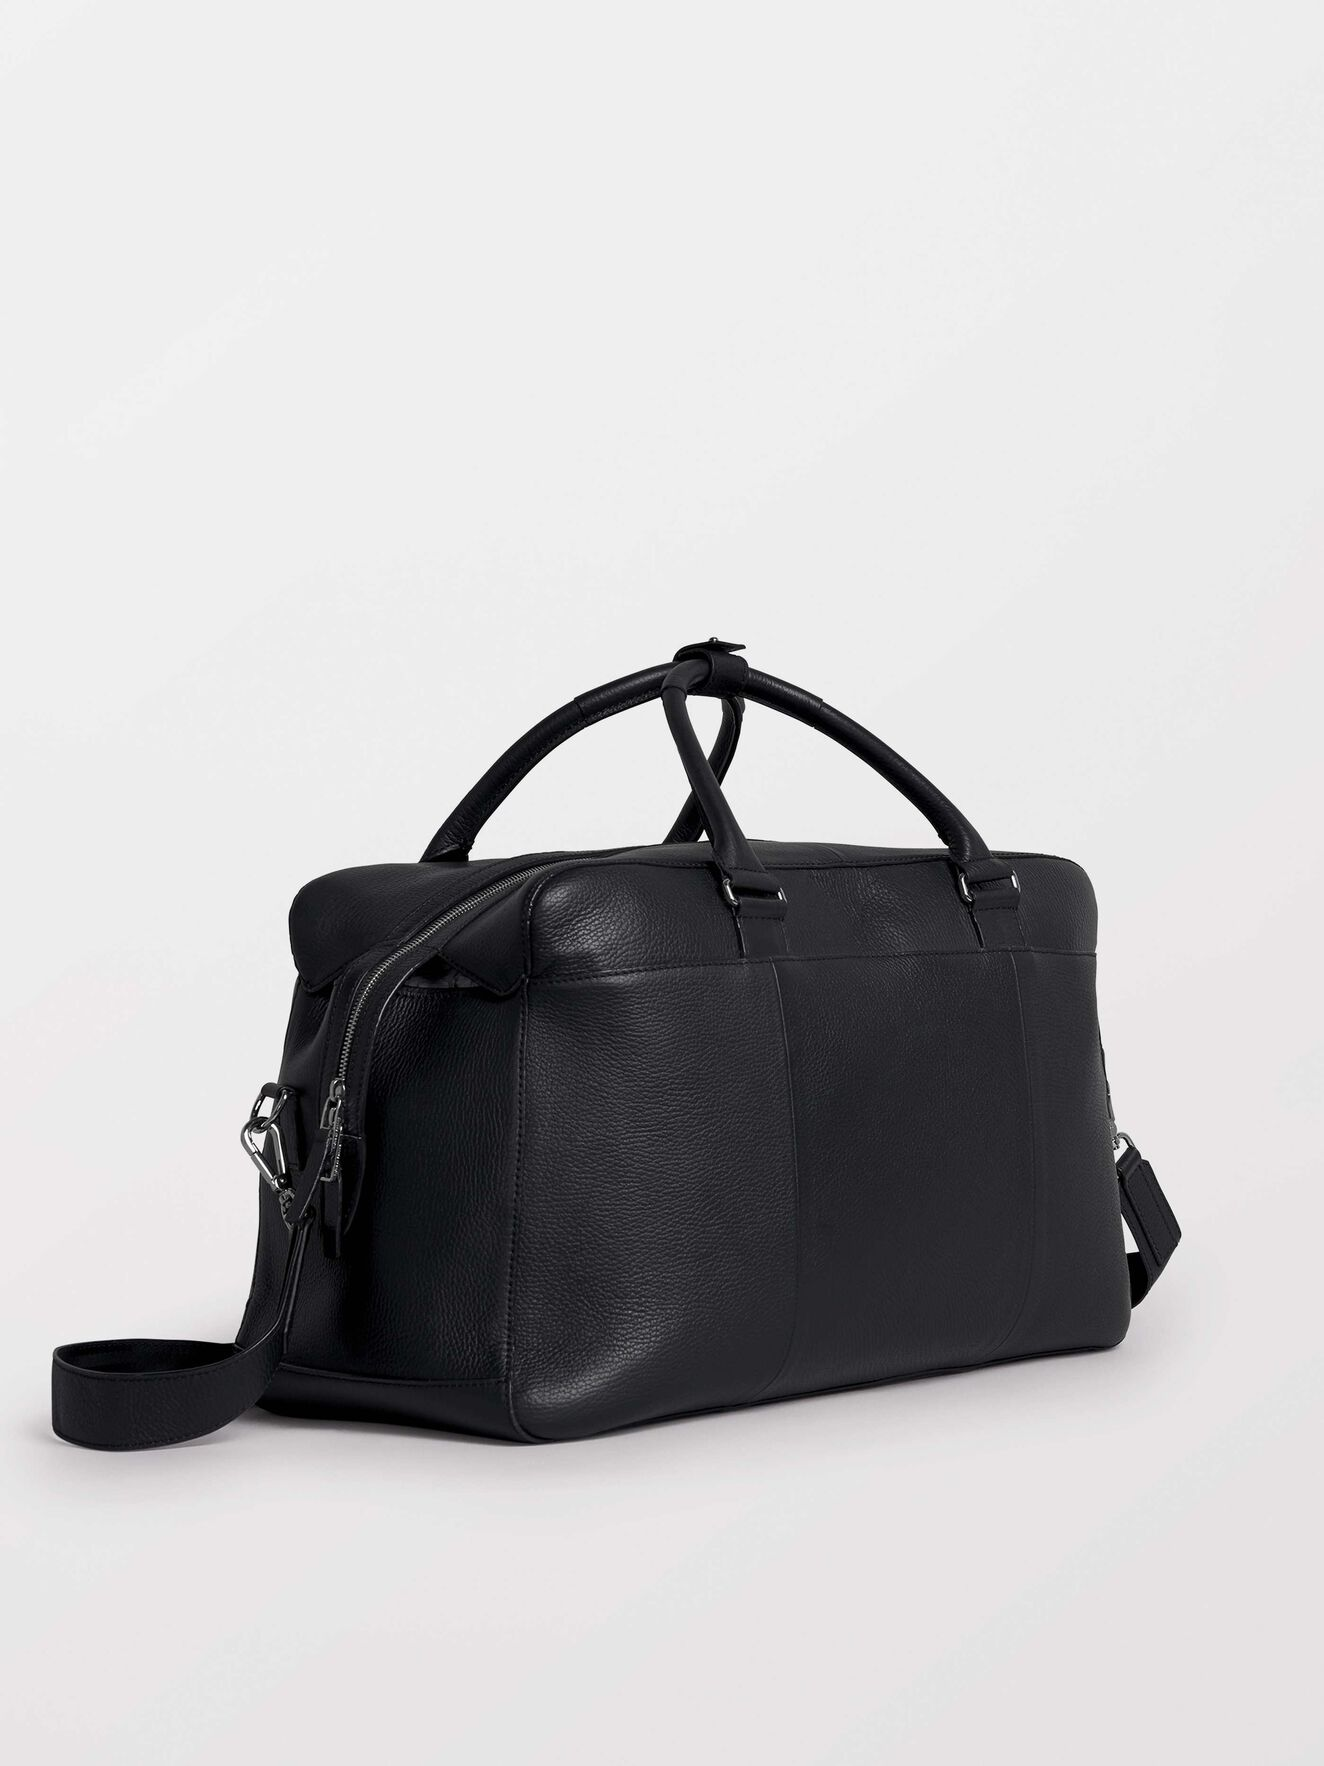 Micke 2 Weekend Bag in Black from Tiger of Sweden